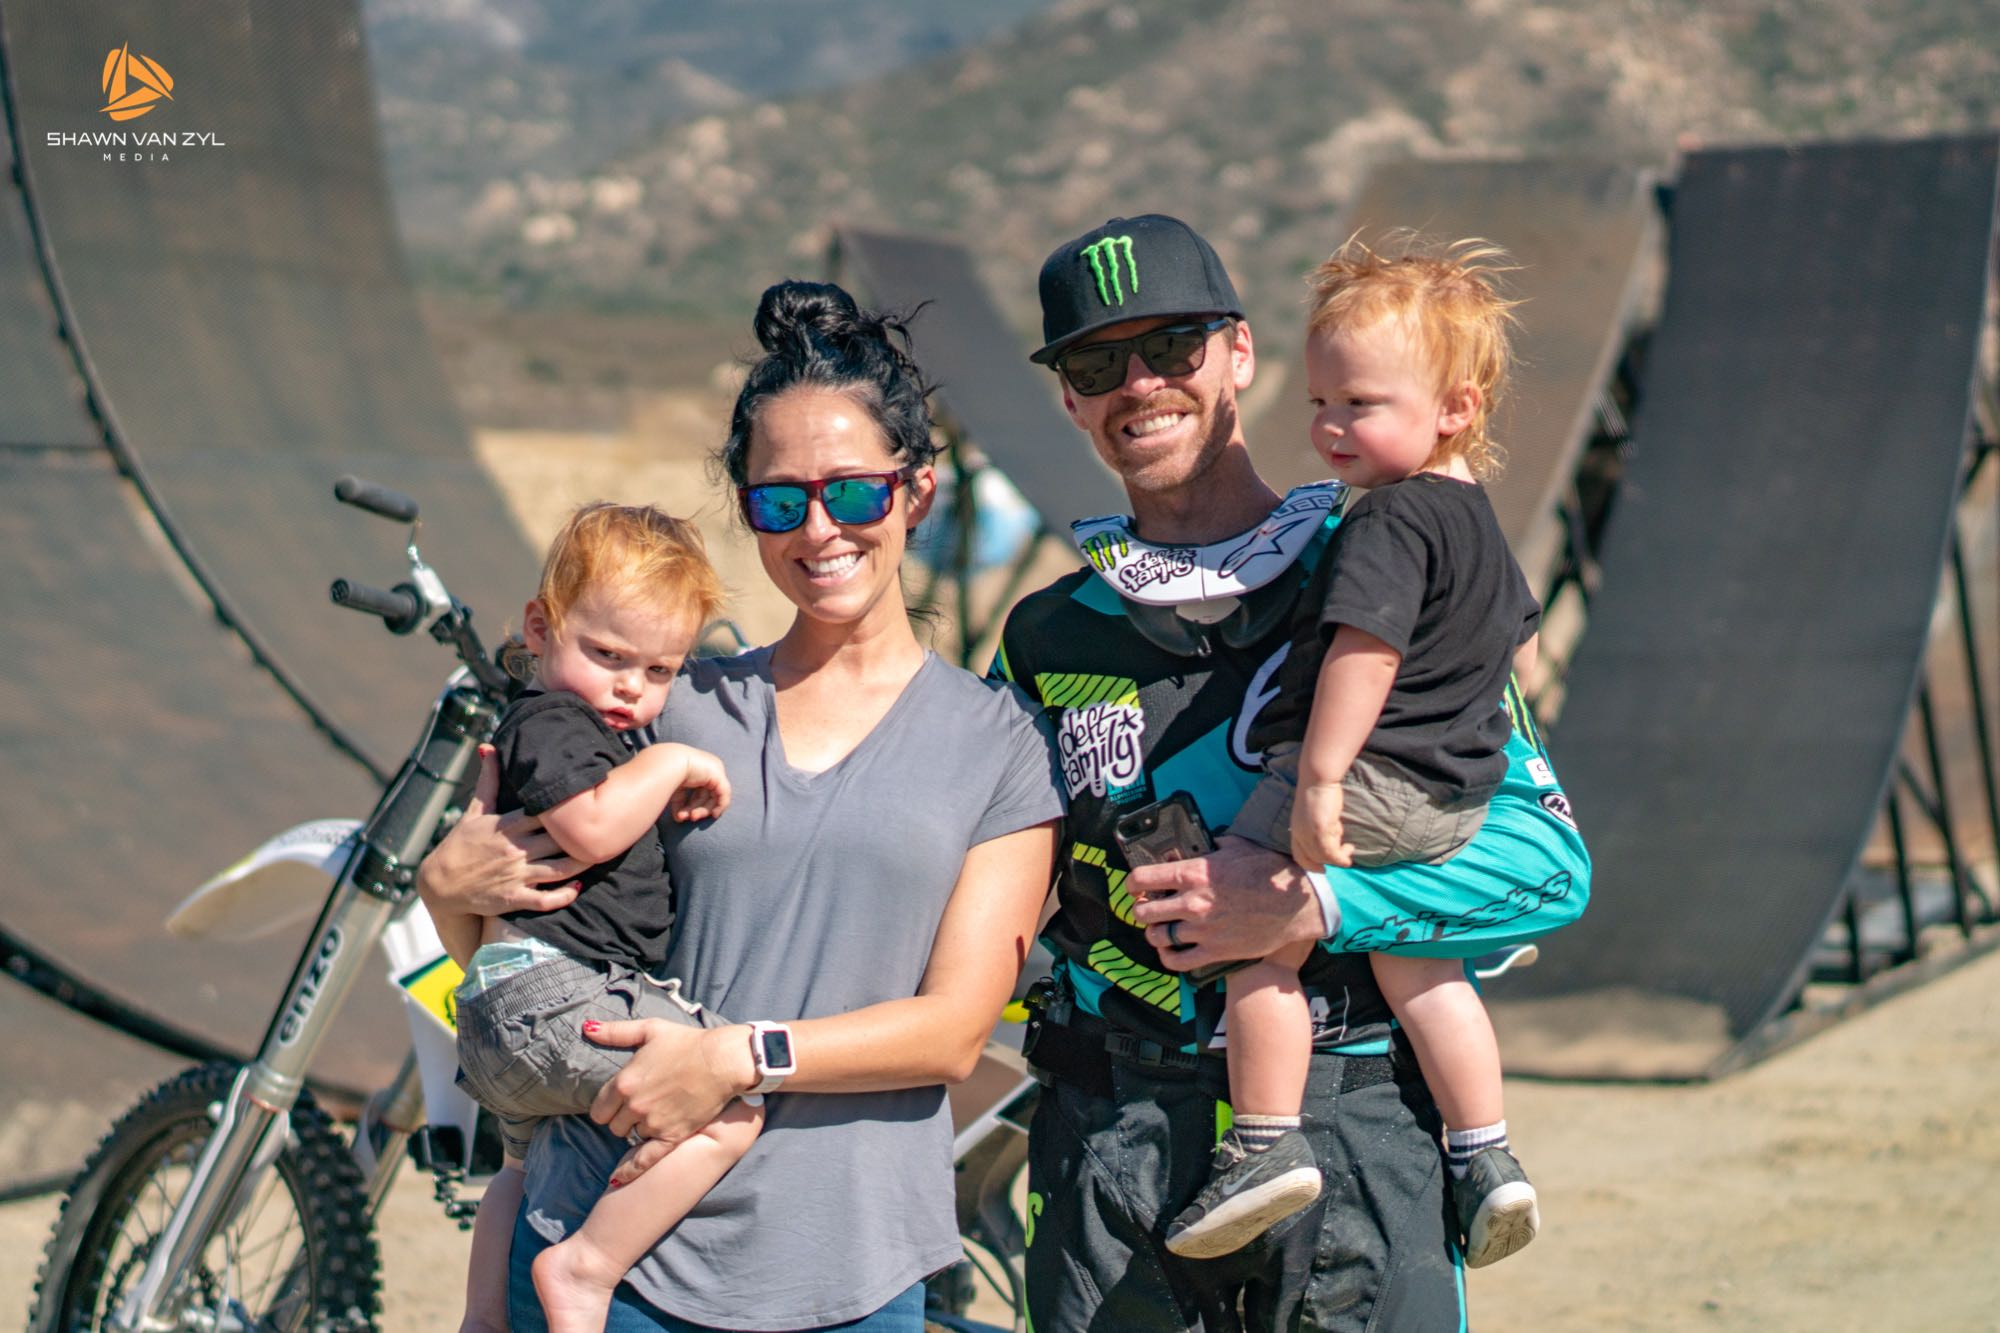 FMX rider, Nate Adams with his family in California